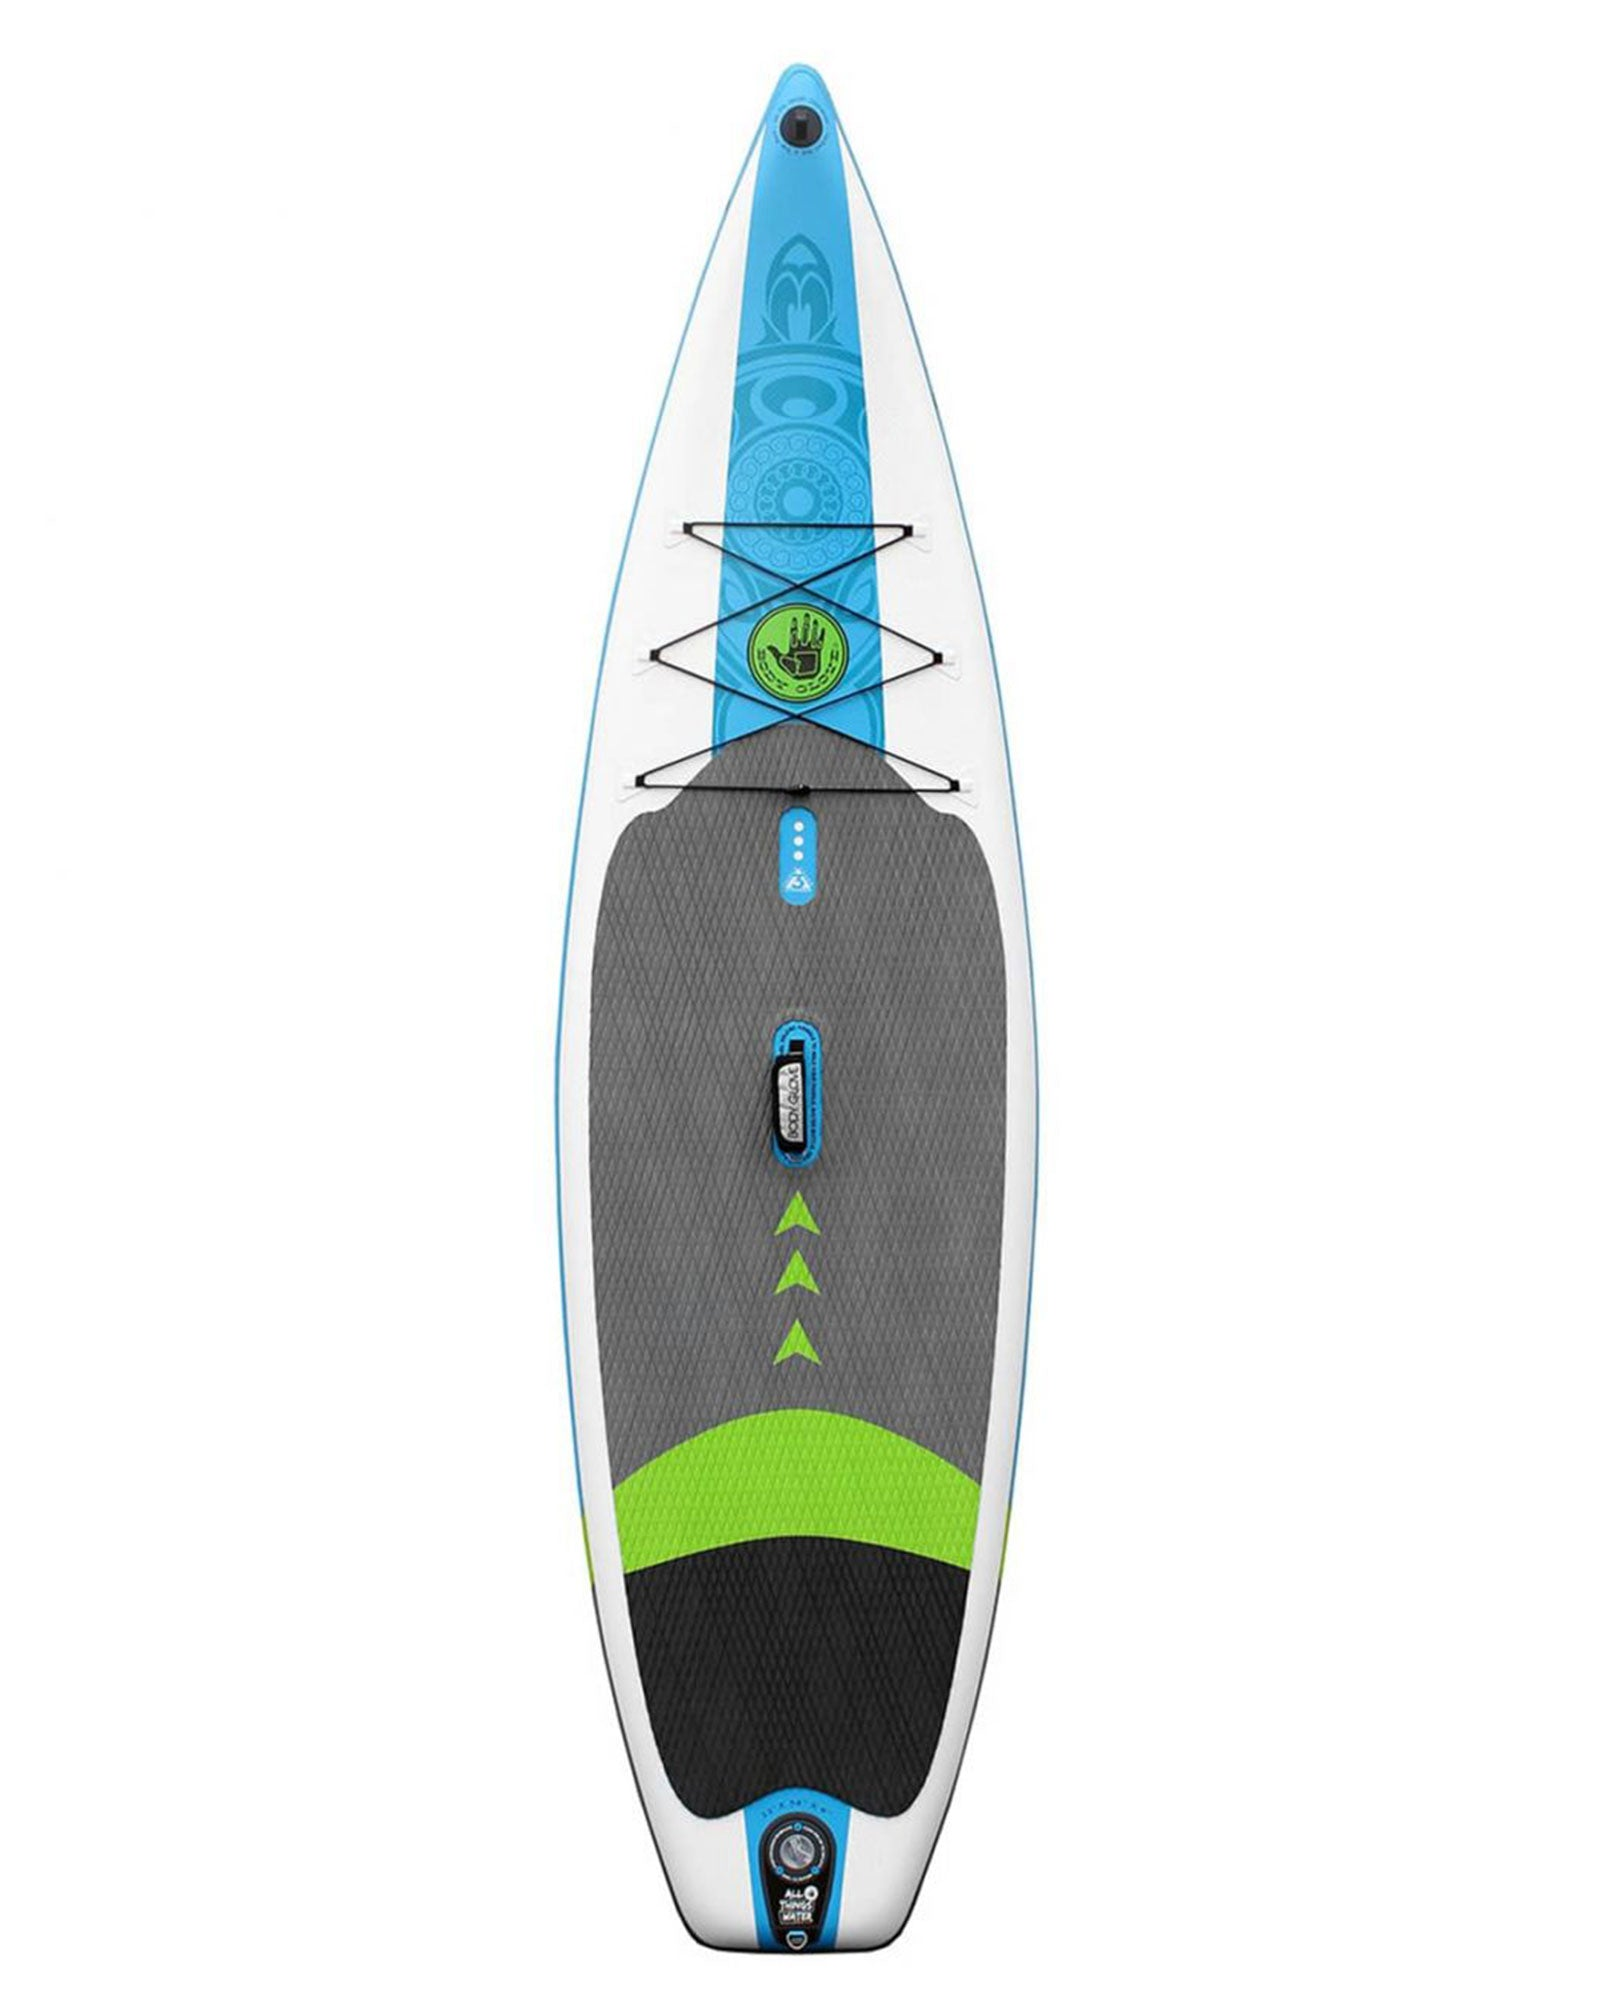 Performer 11' Blue Ocean Edition Inflatable Stand Up Paddle Board (ISUP) with Bag, Paddle & Pump